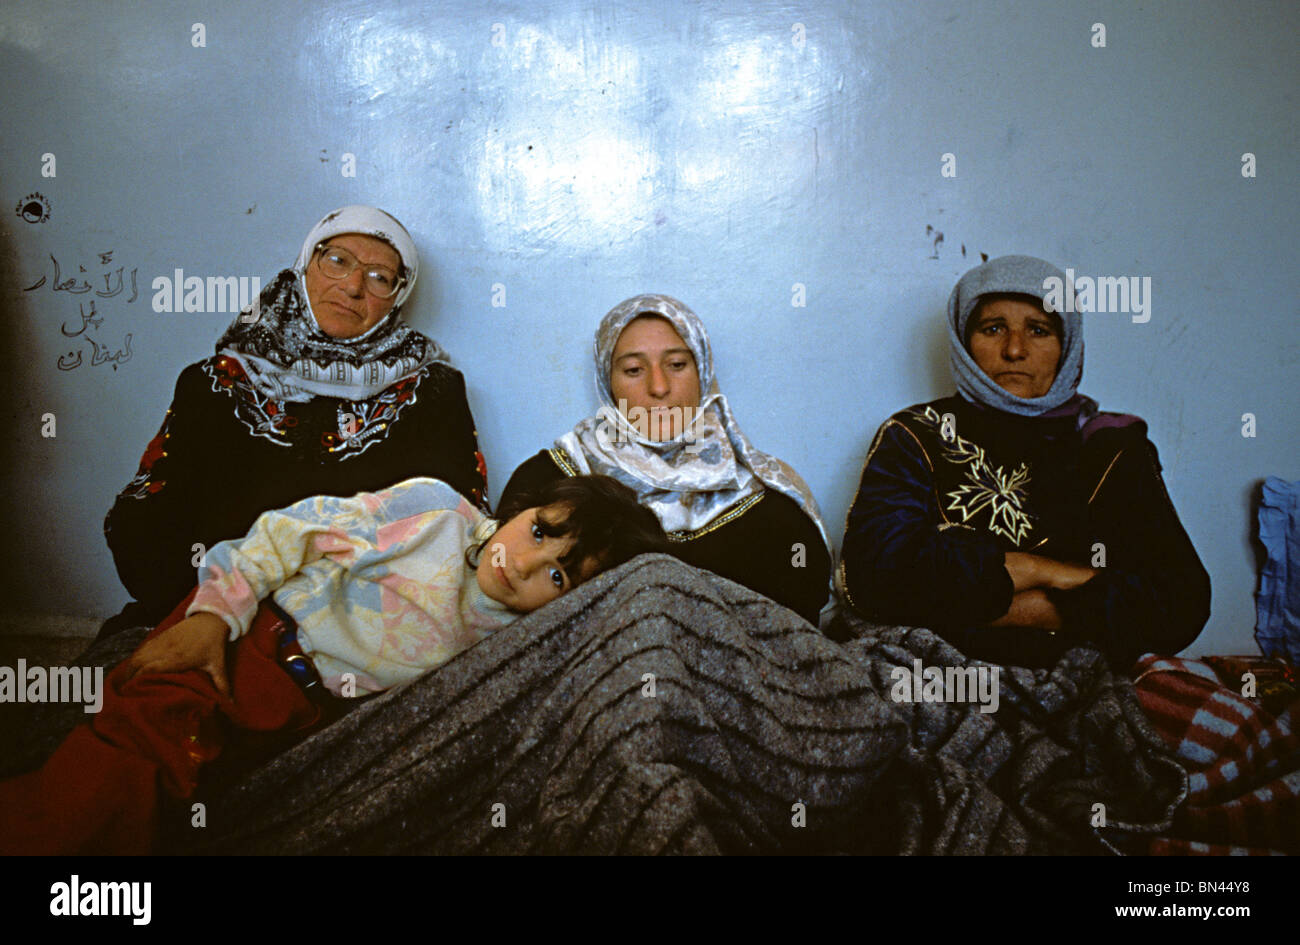 Civilian refugees from South Lebanon taking refuge  in a School Beirut during Israeli shelling in 1997 of South - Stock Image